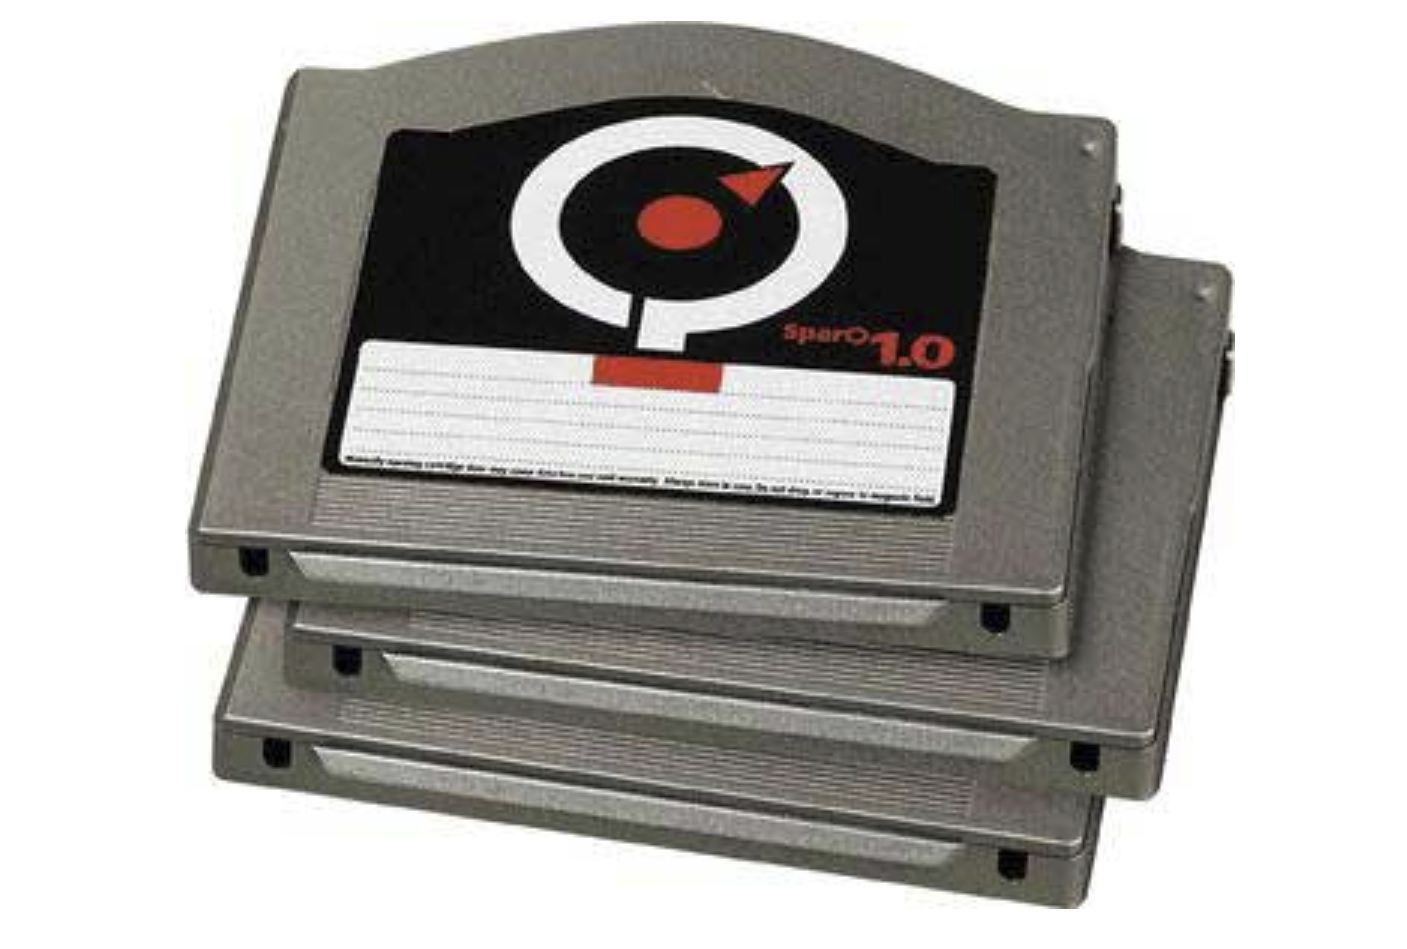 disk and archiving - avoid obsolete mediums